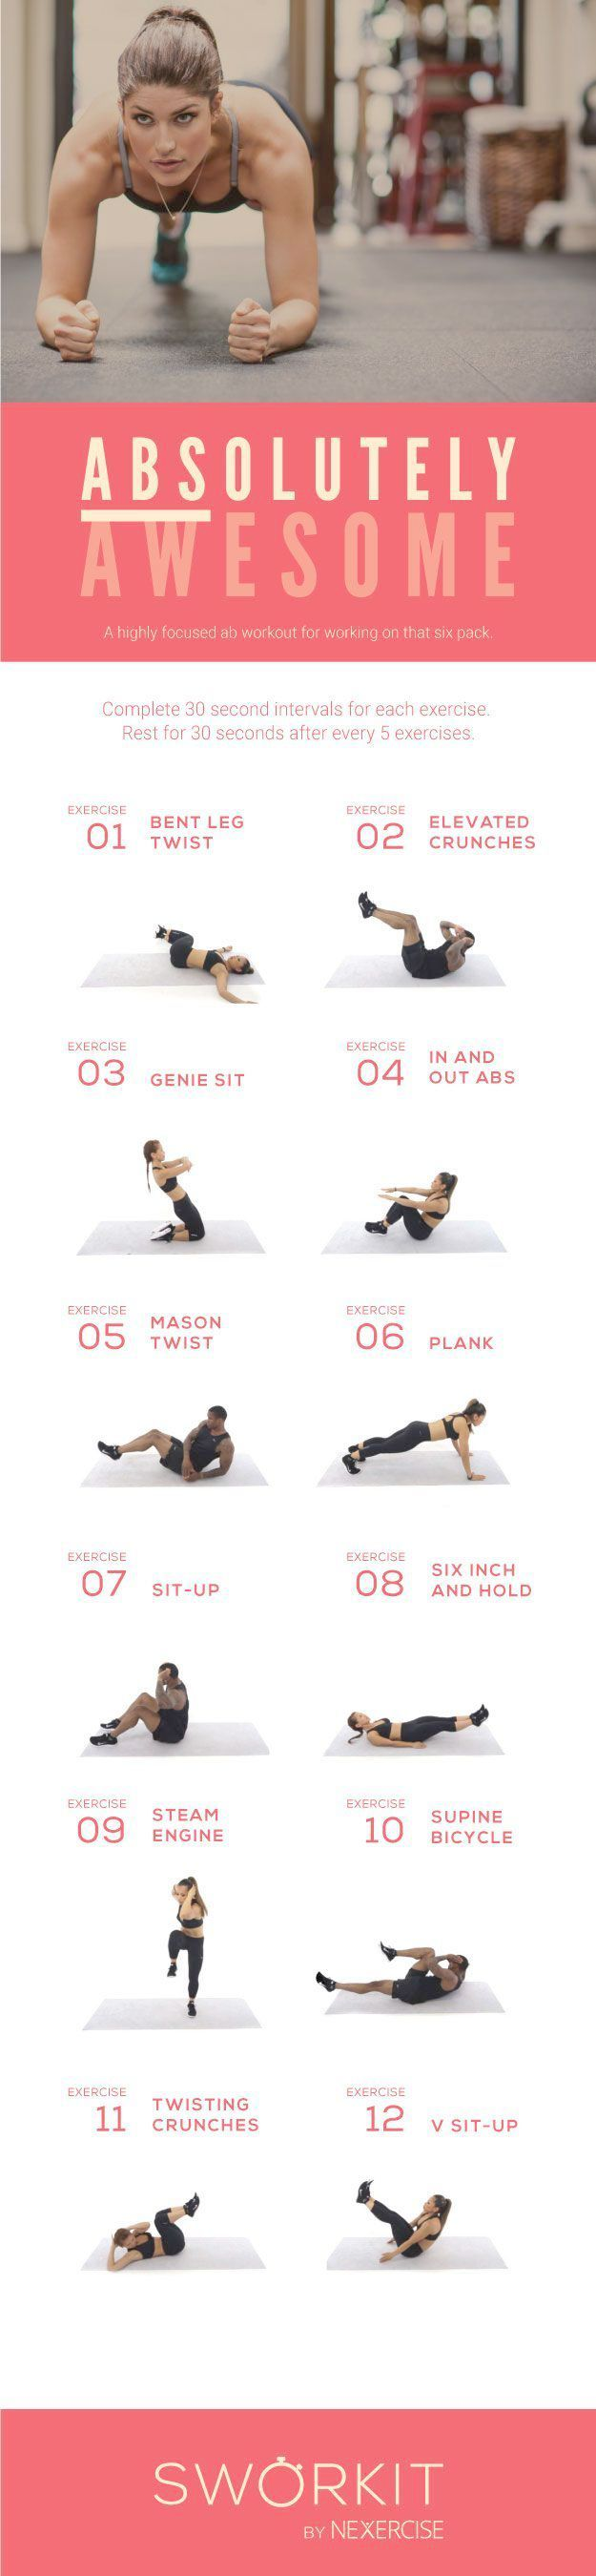 Total Body Workout – 45 min – Core, Arms, Glutes – 100 Rep Challenge